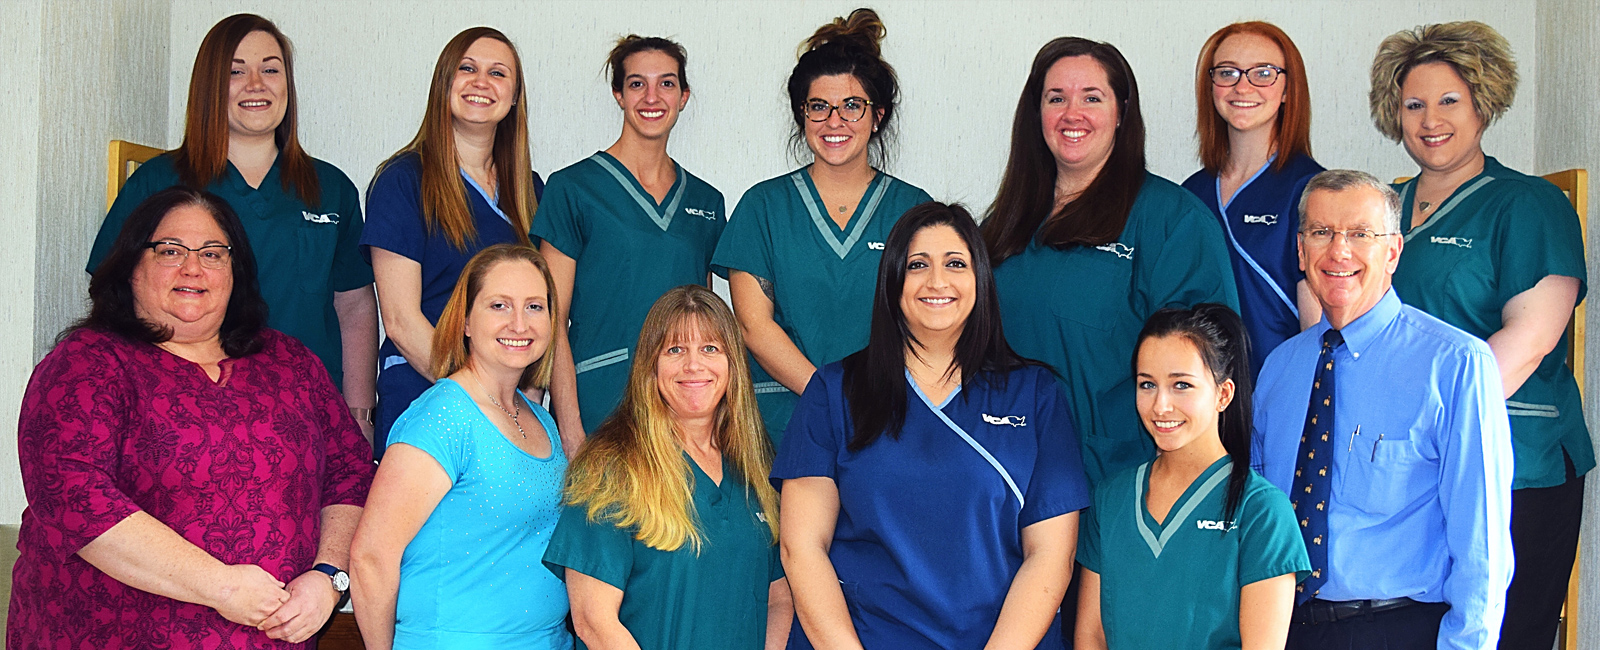 Team Picture of VCA Associates in Pet Care Animal Hospital